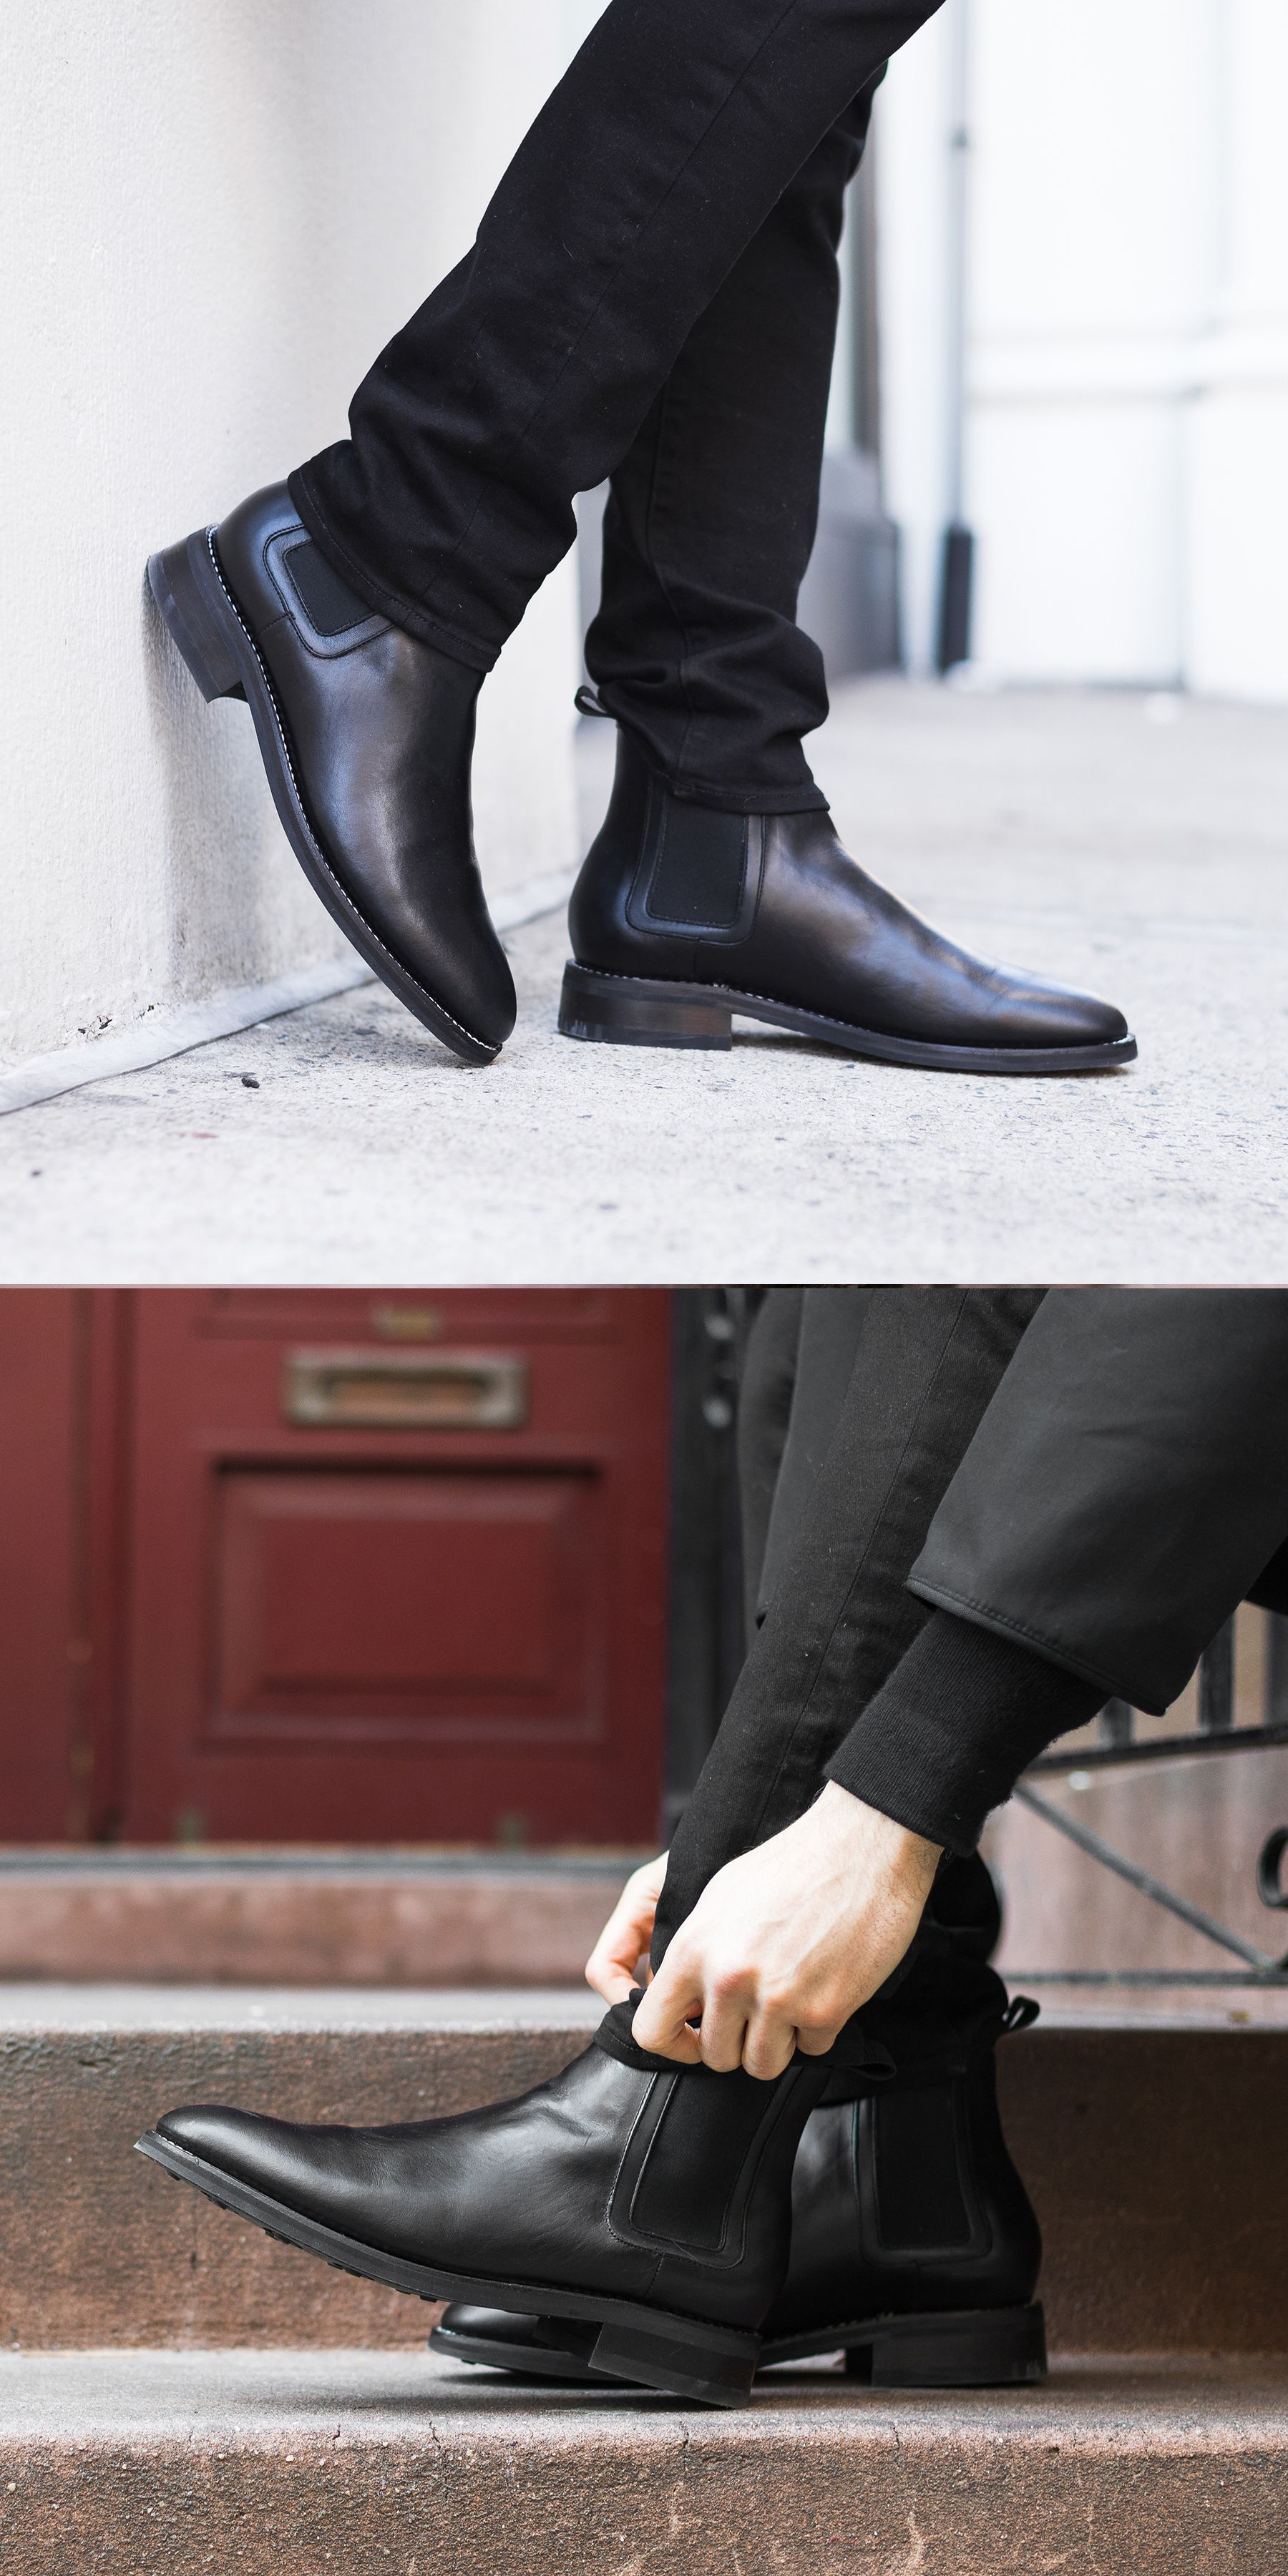 46b95db6bc30e Shop the Men's Duke Chelsea Boot at thursdayboots.com. 4,500+ 5-Star  Reviews · Easy & Secure Checkout · Free Shipping & Returns